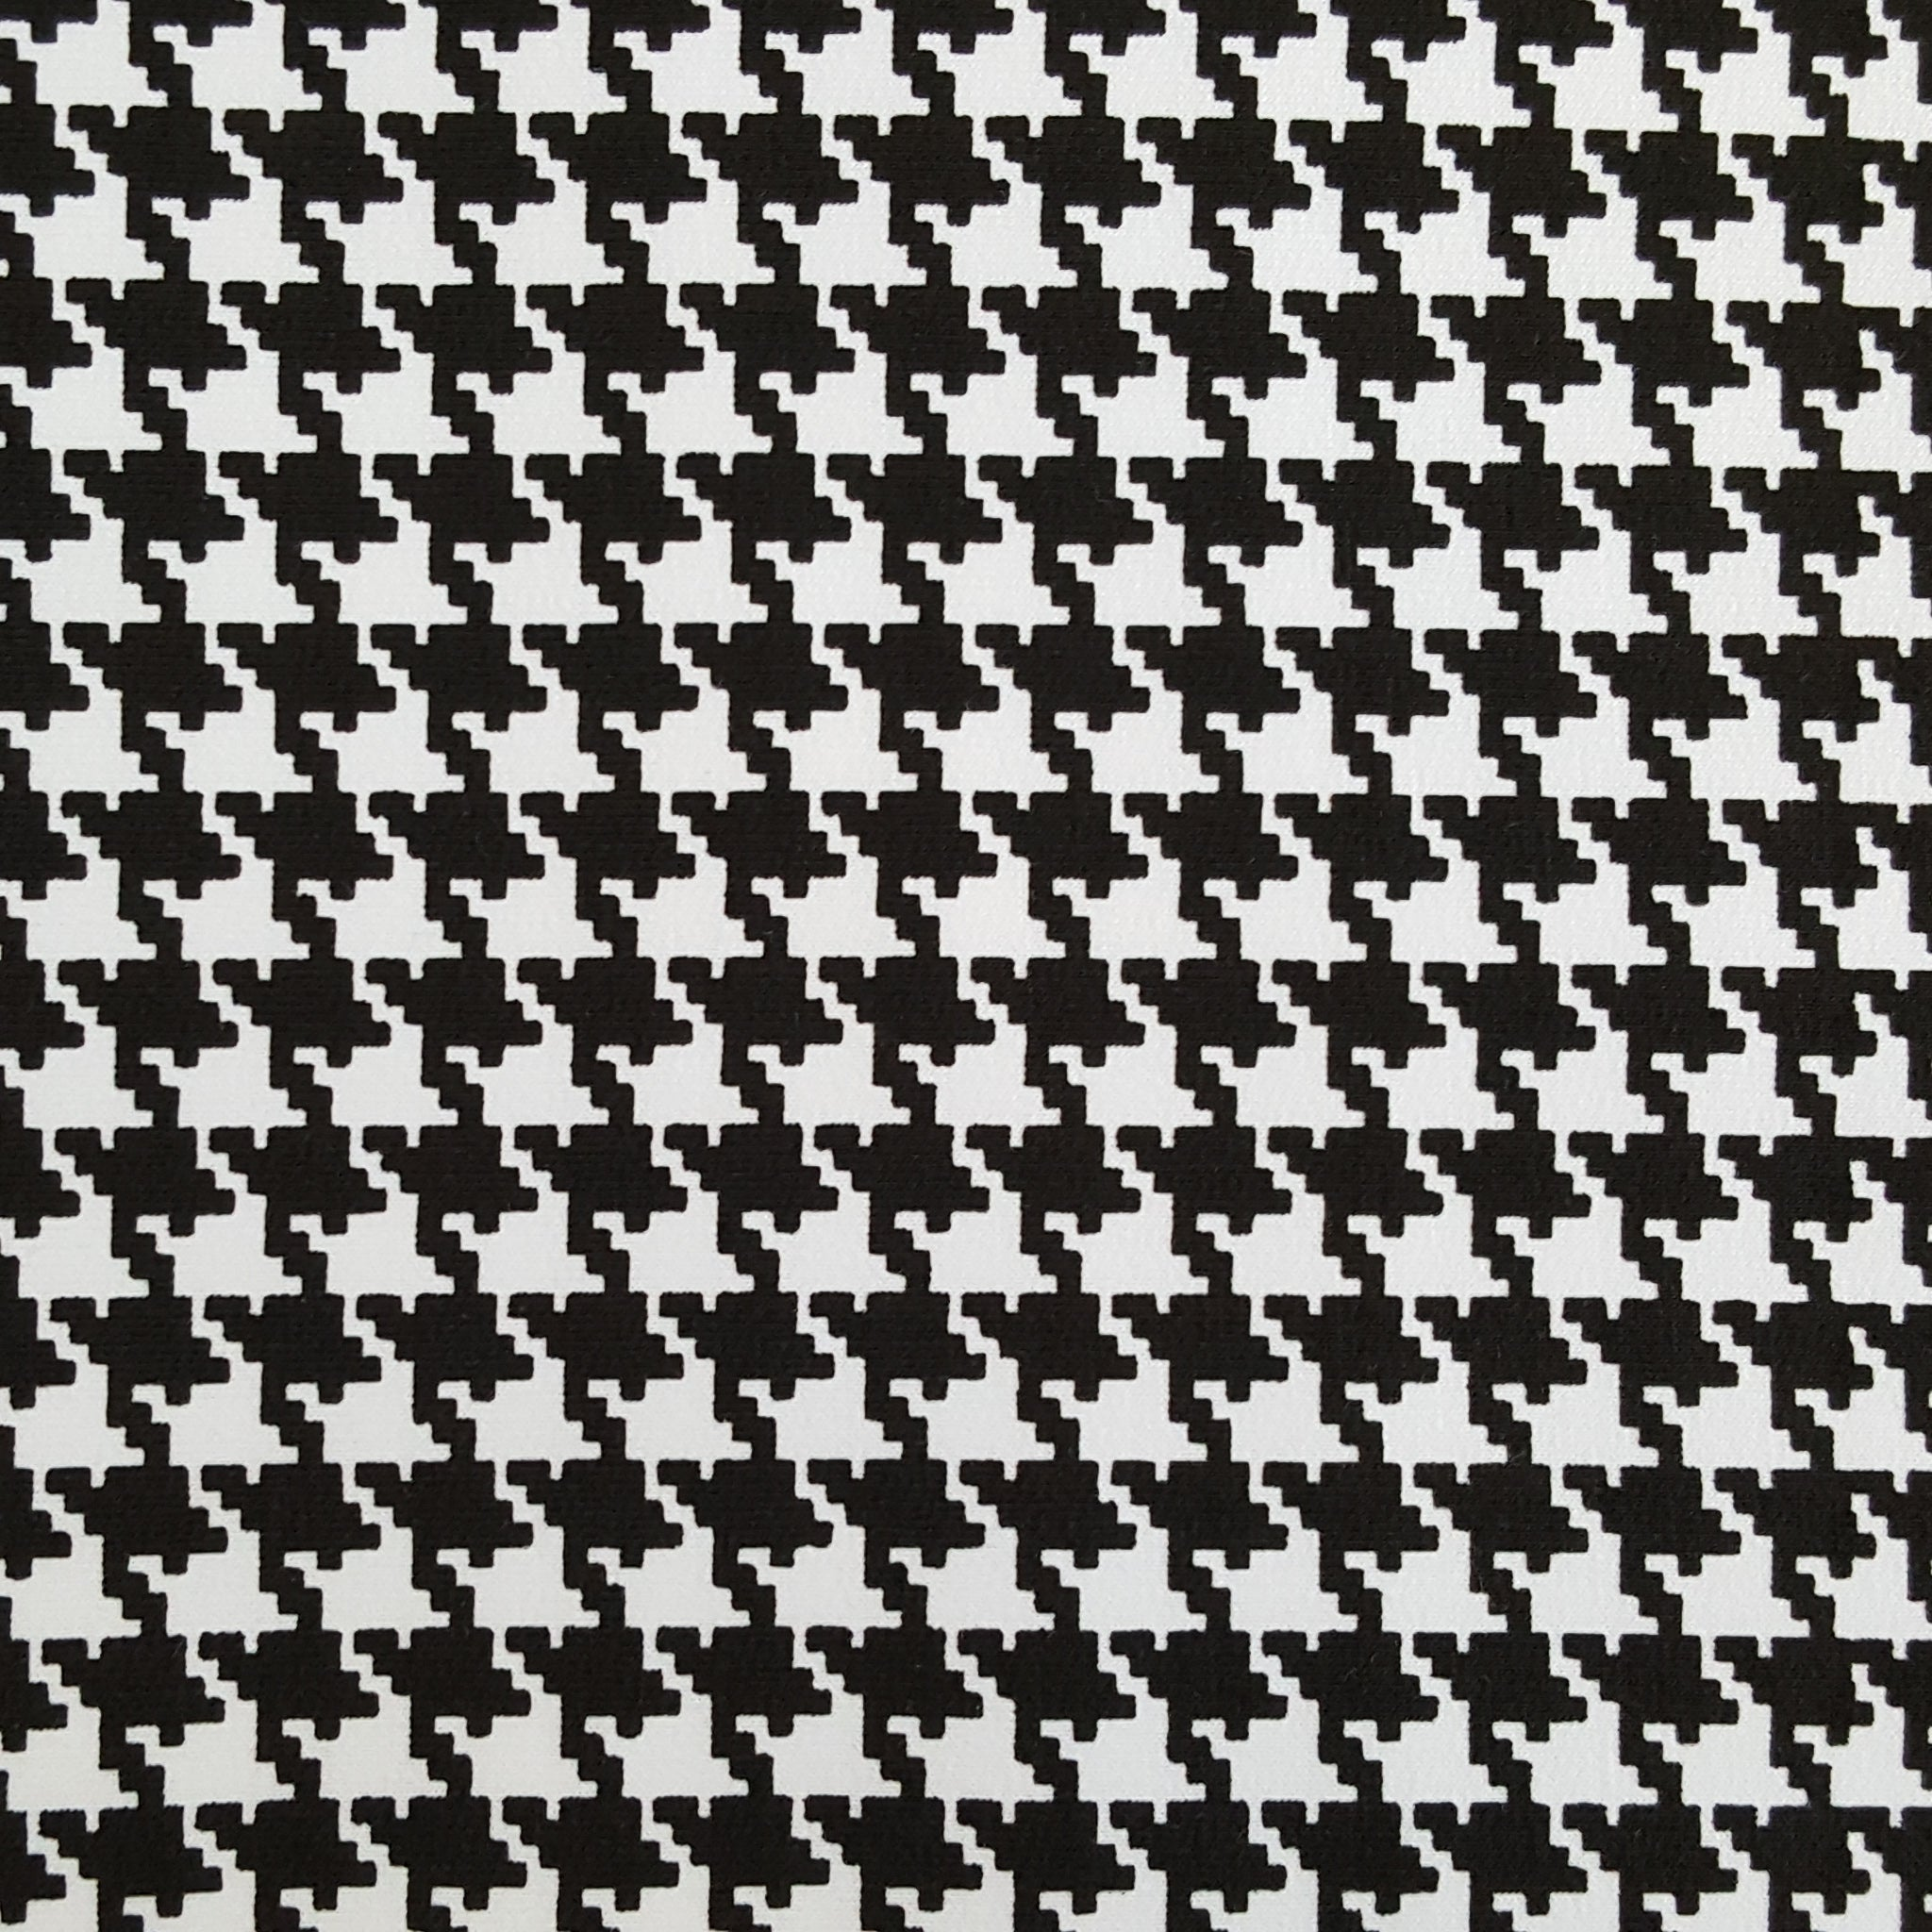 houndstooth print french terry jersey knit fabric